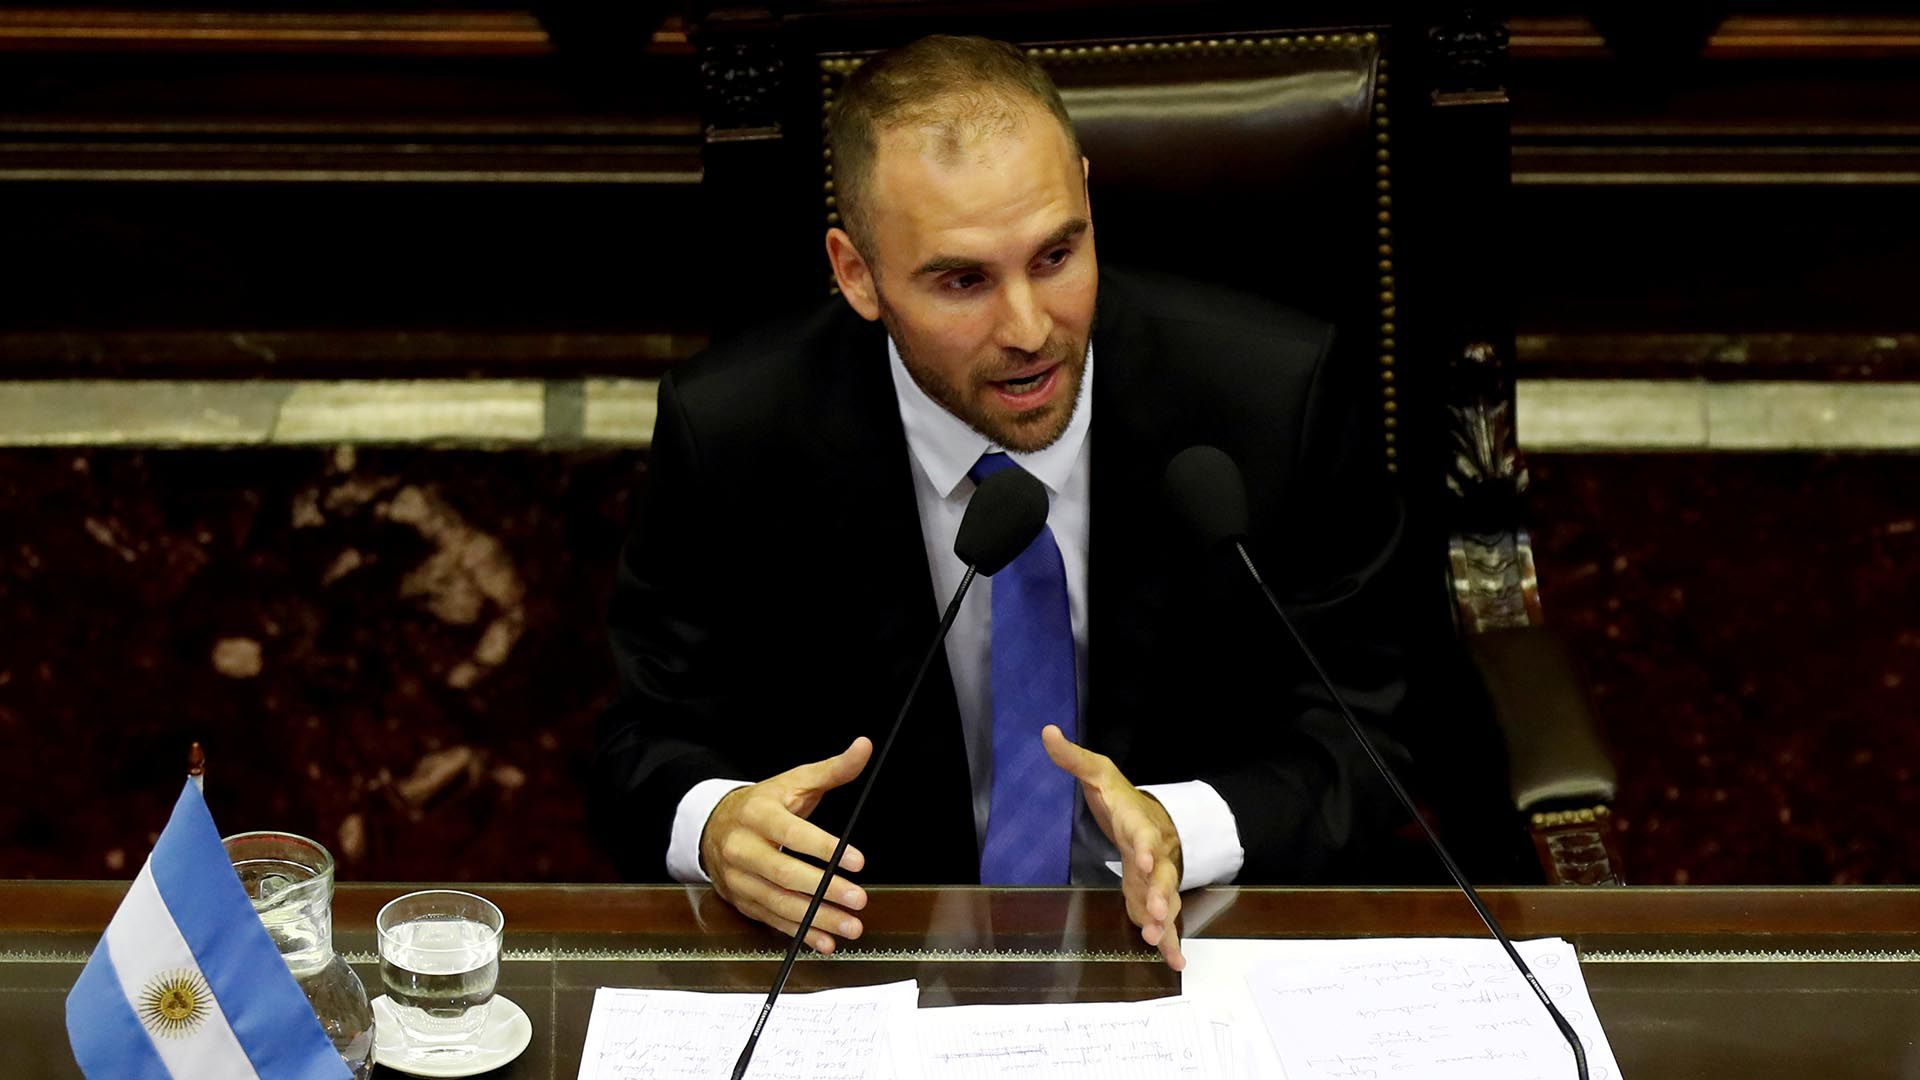 FILE PHOTO FILE PHOTO Argentina's economy minister, Martin Guzman, speaks at Congress on the country's economic situation and debt plan ahead of the meetings with the International Monetary Fund officials who are traveling to the country, in Buenos Aire